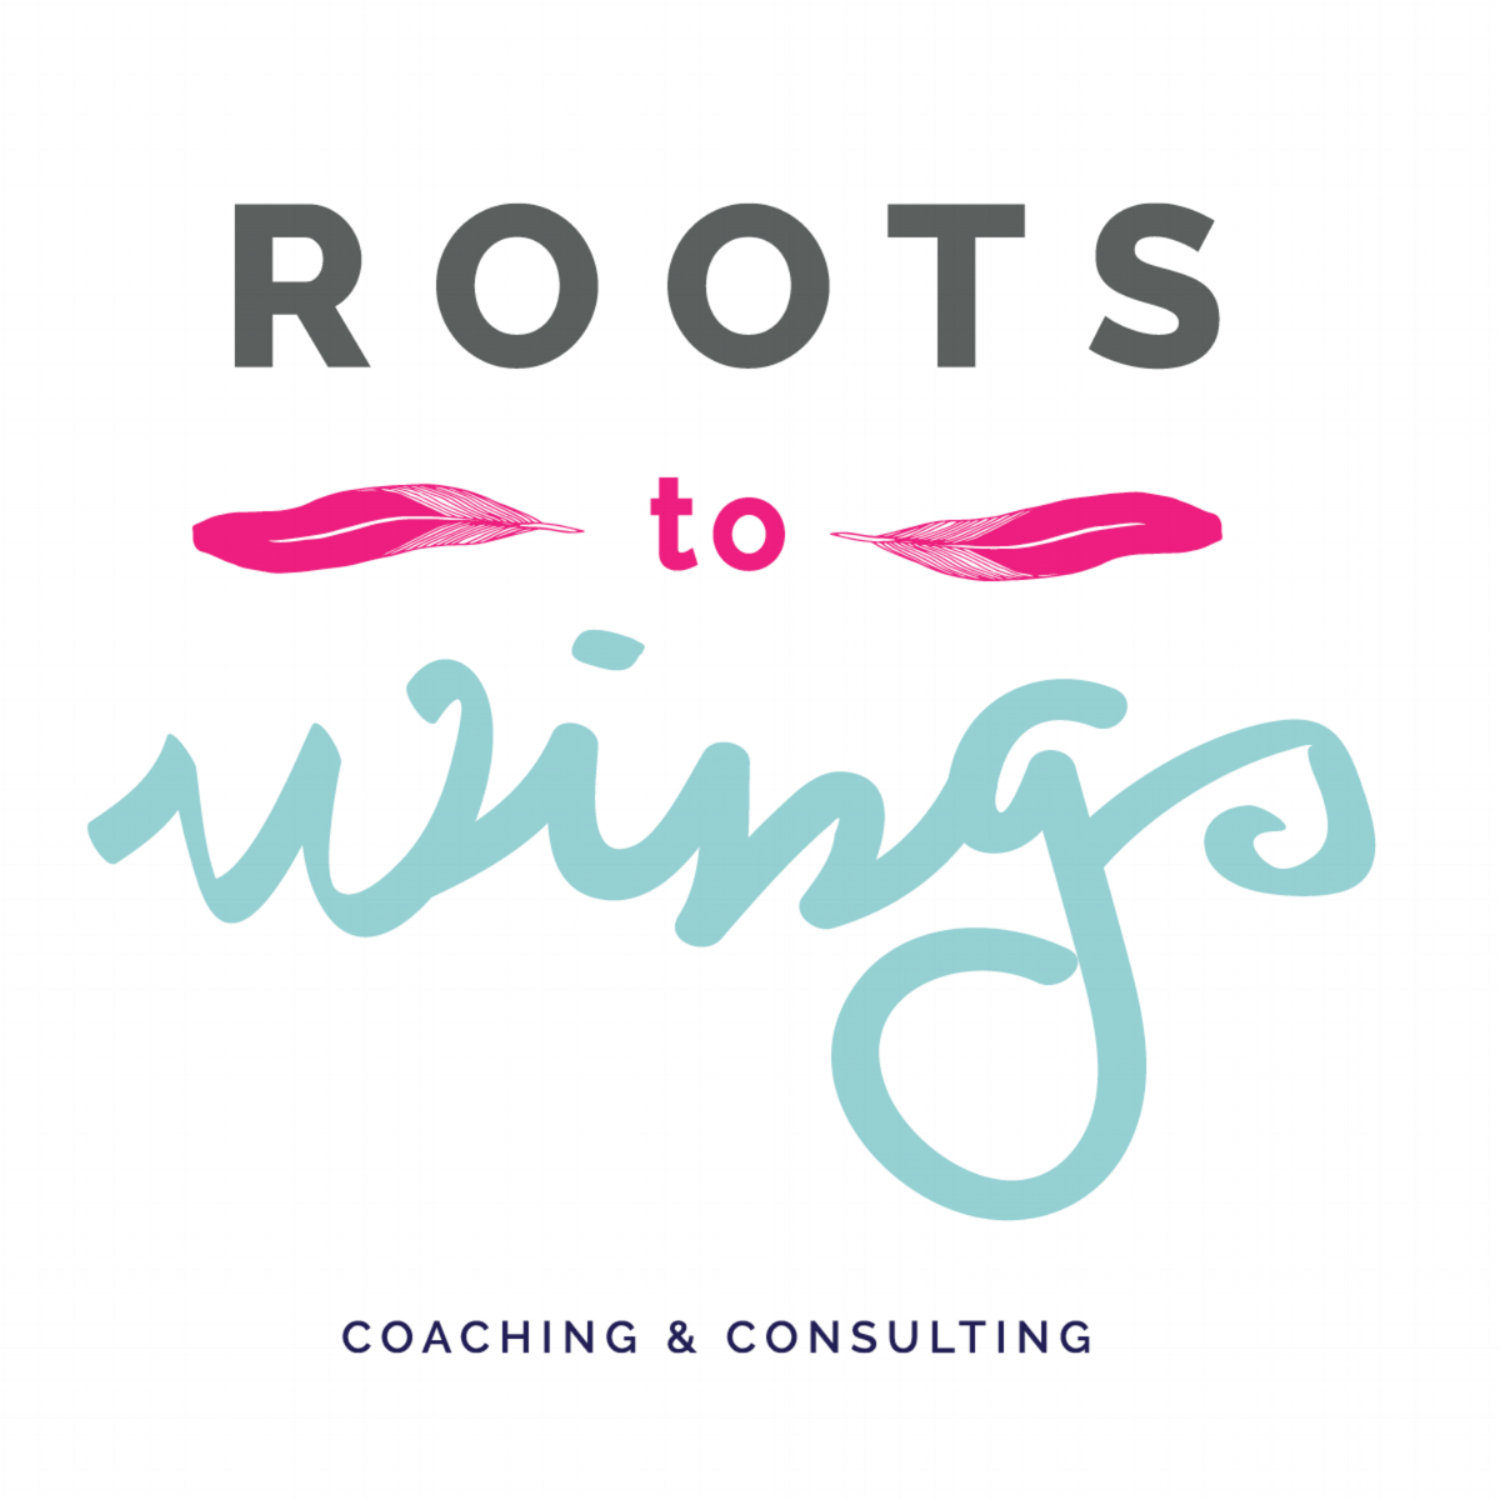 Roots to Wings Yoga